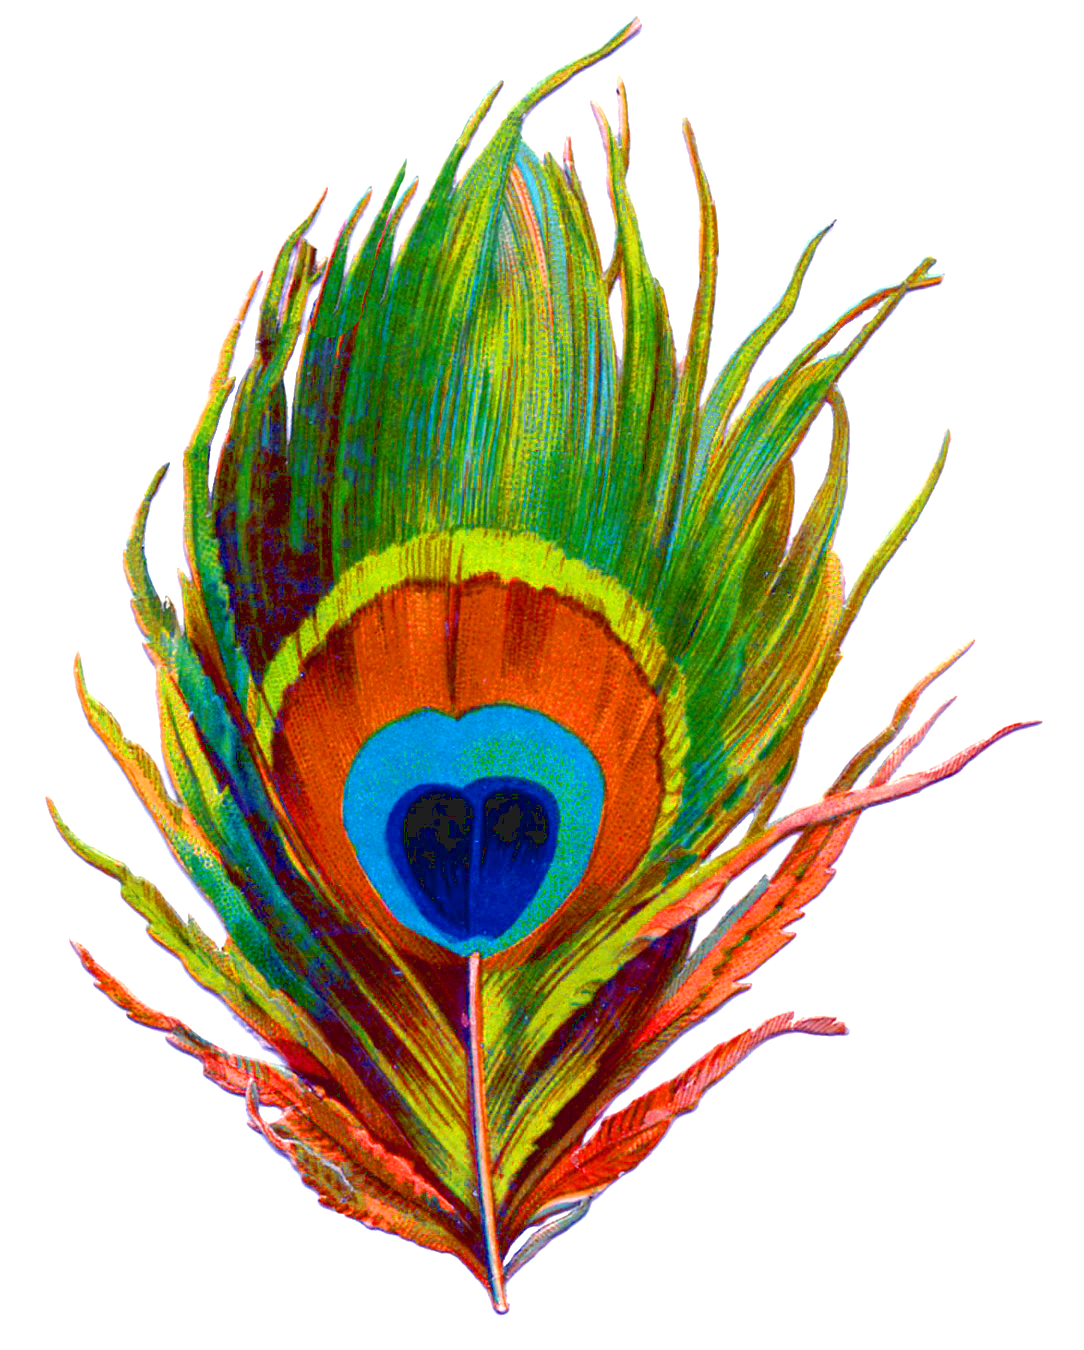 Peacock Feather Png Designs 3109